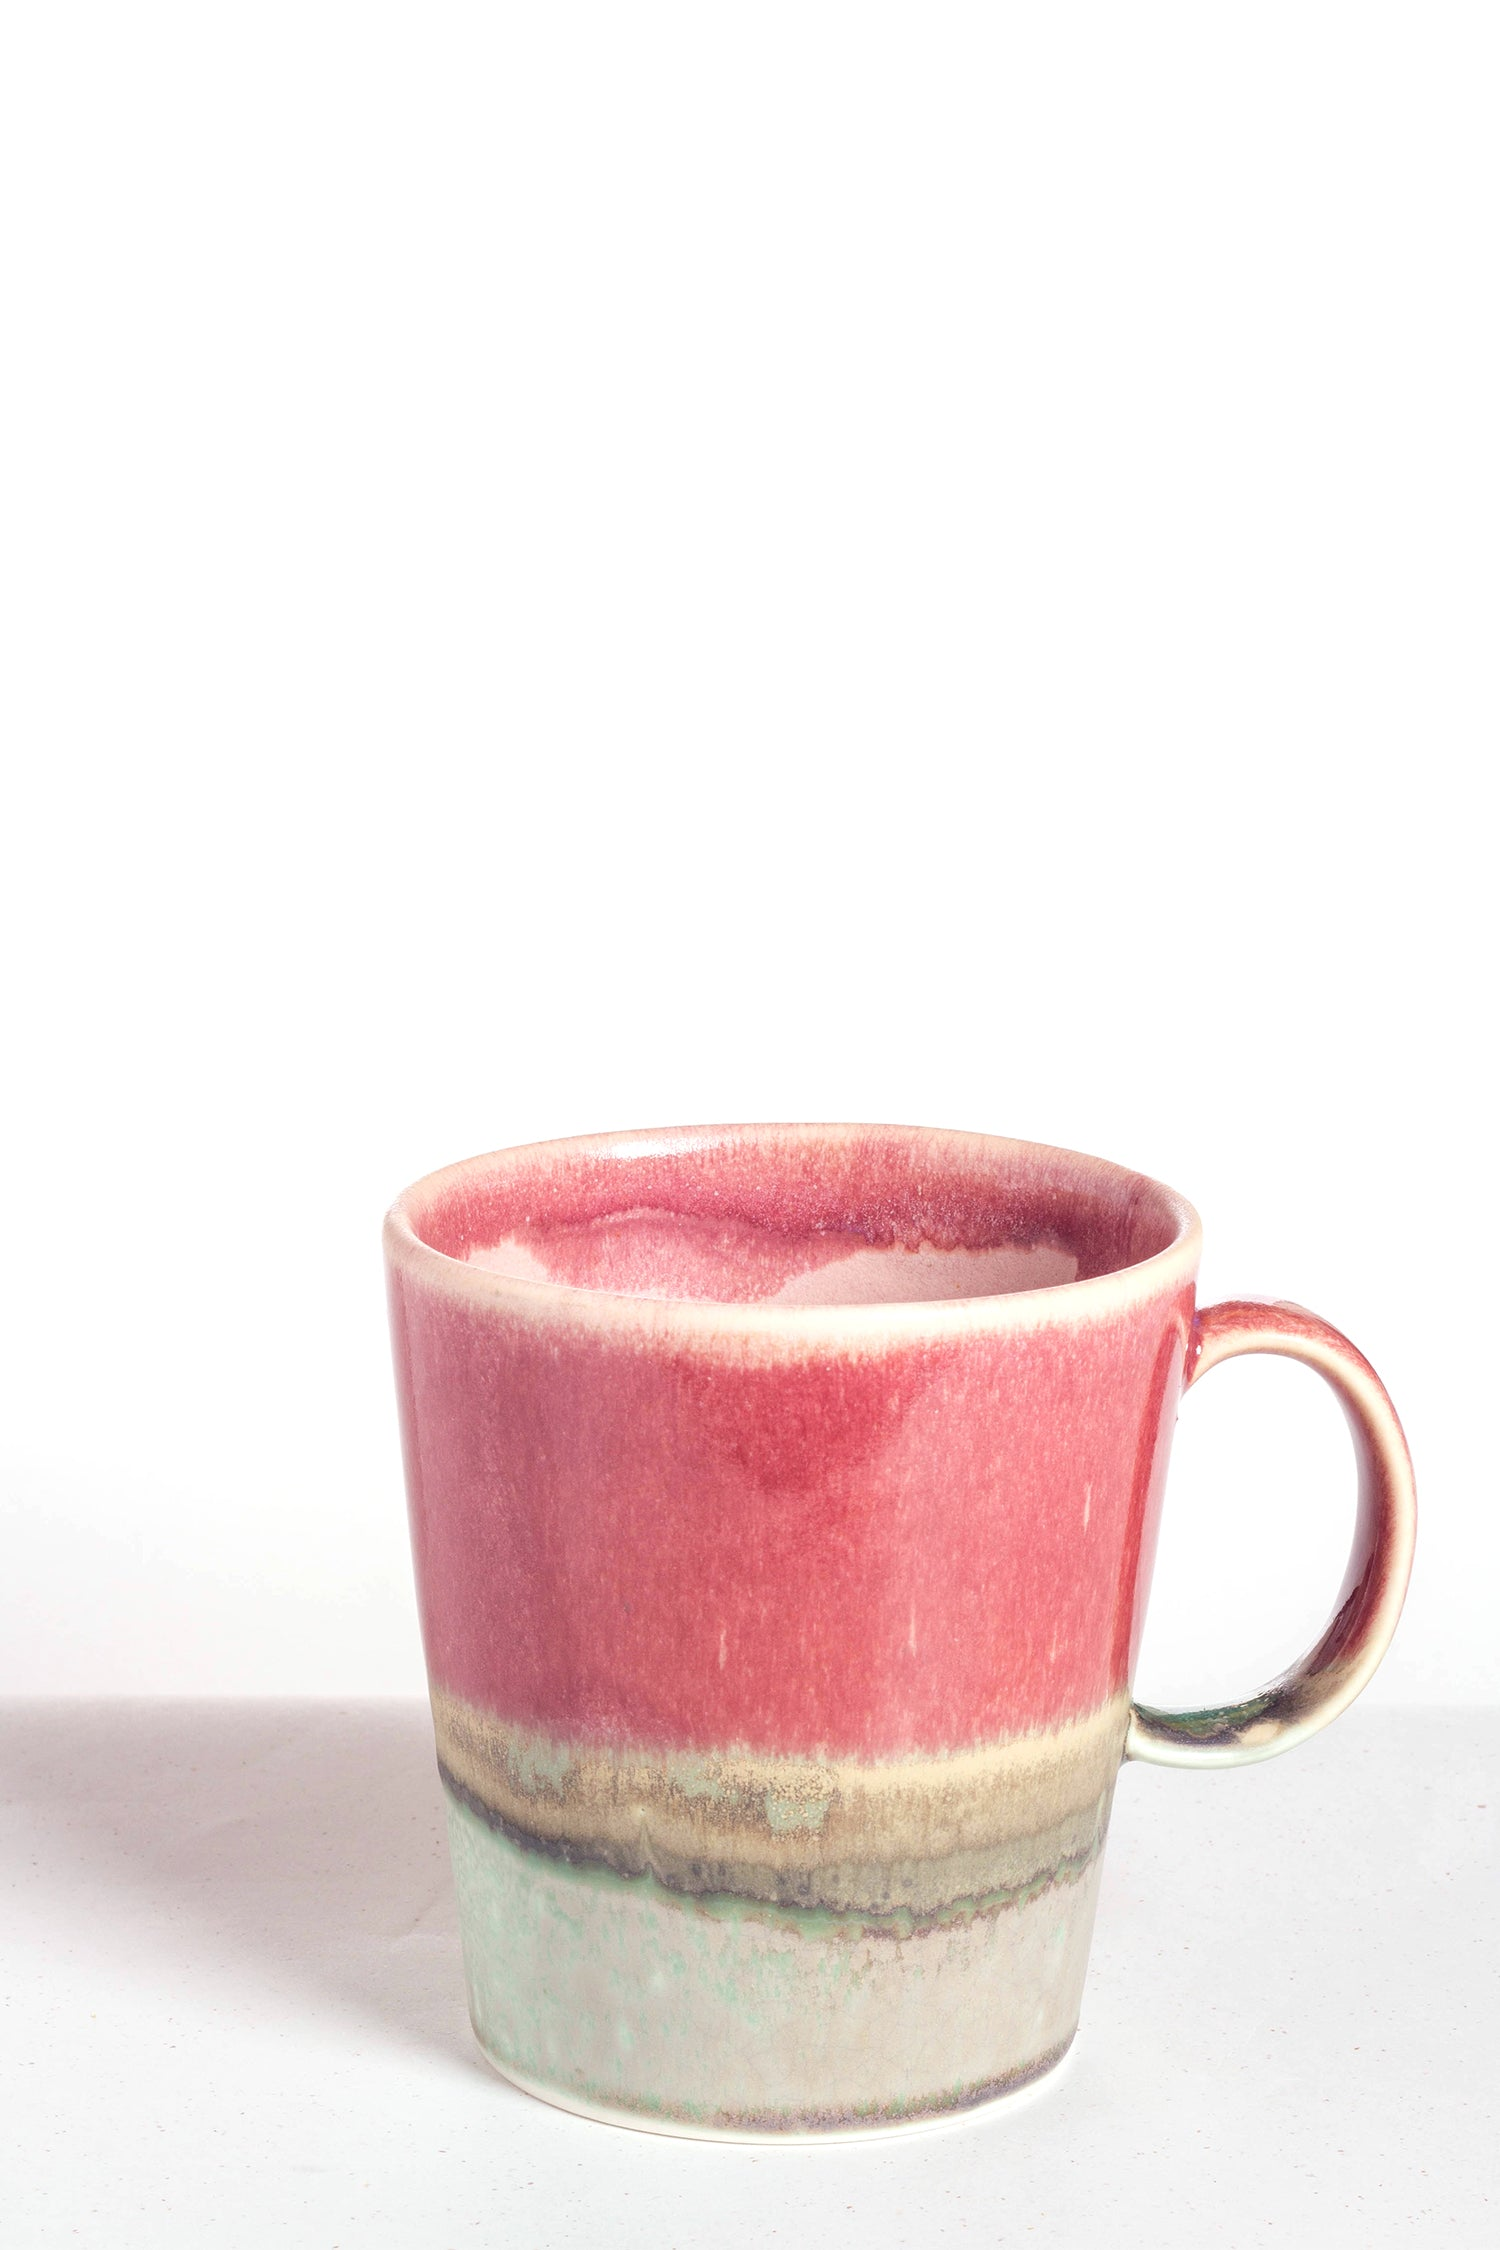 SGW LAB MUG - BLUSHING SHORE